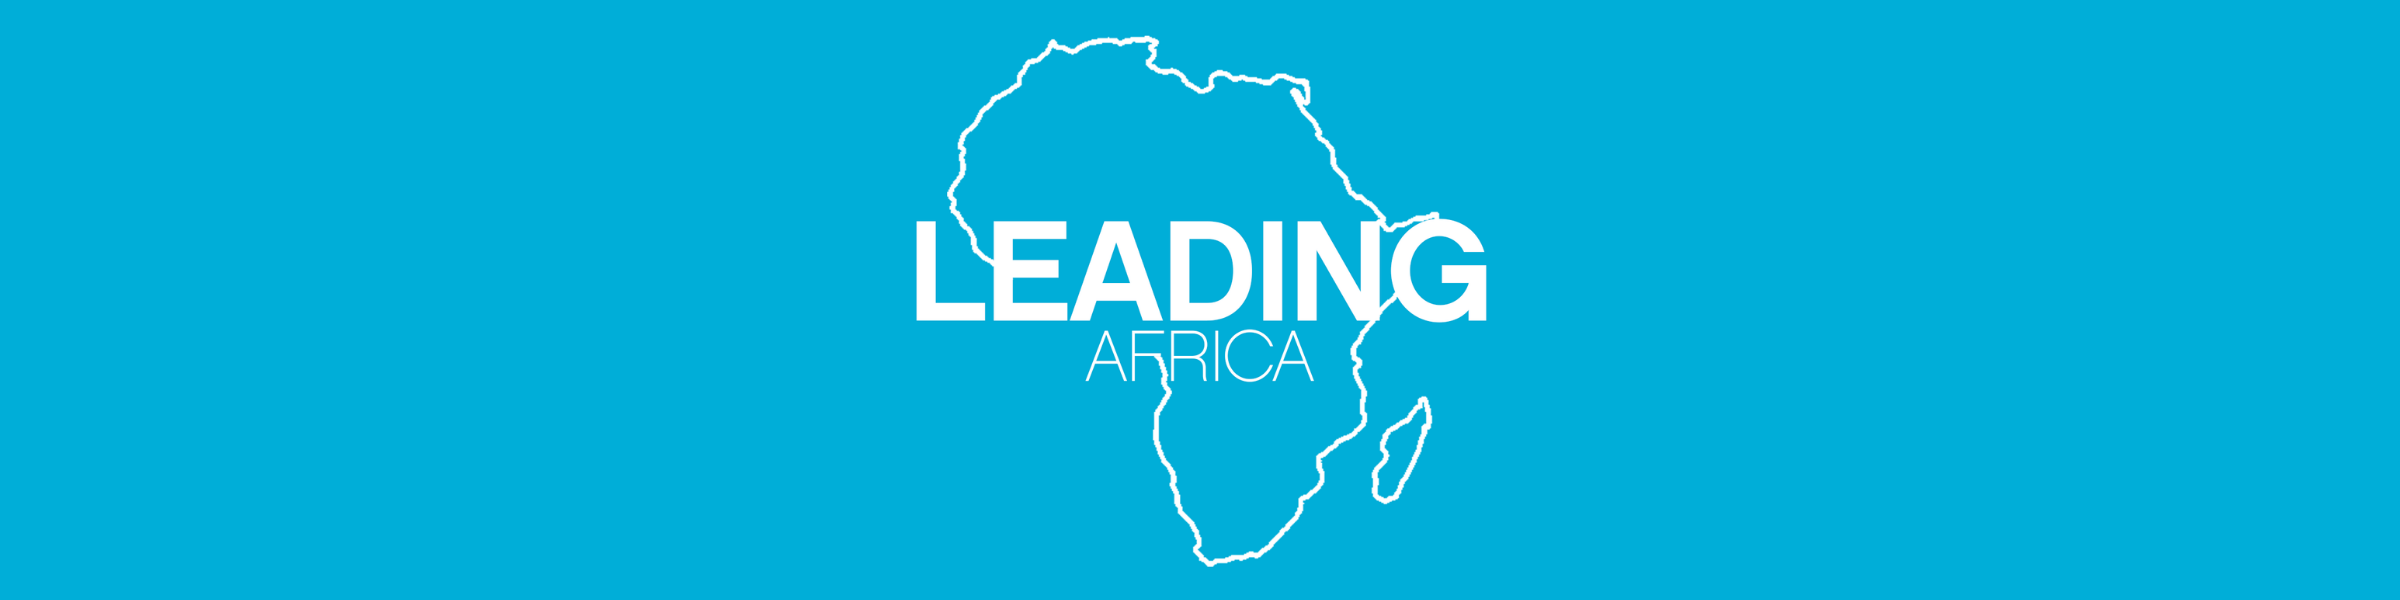 Leading Africa